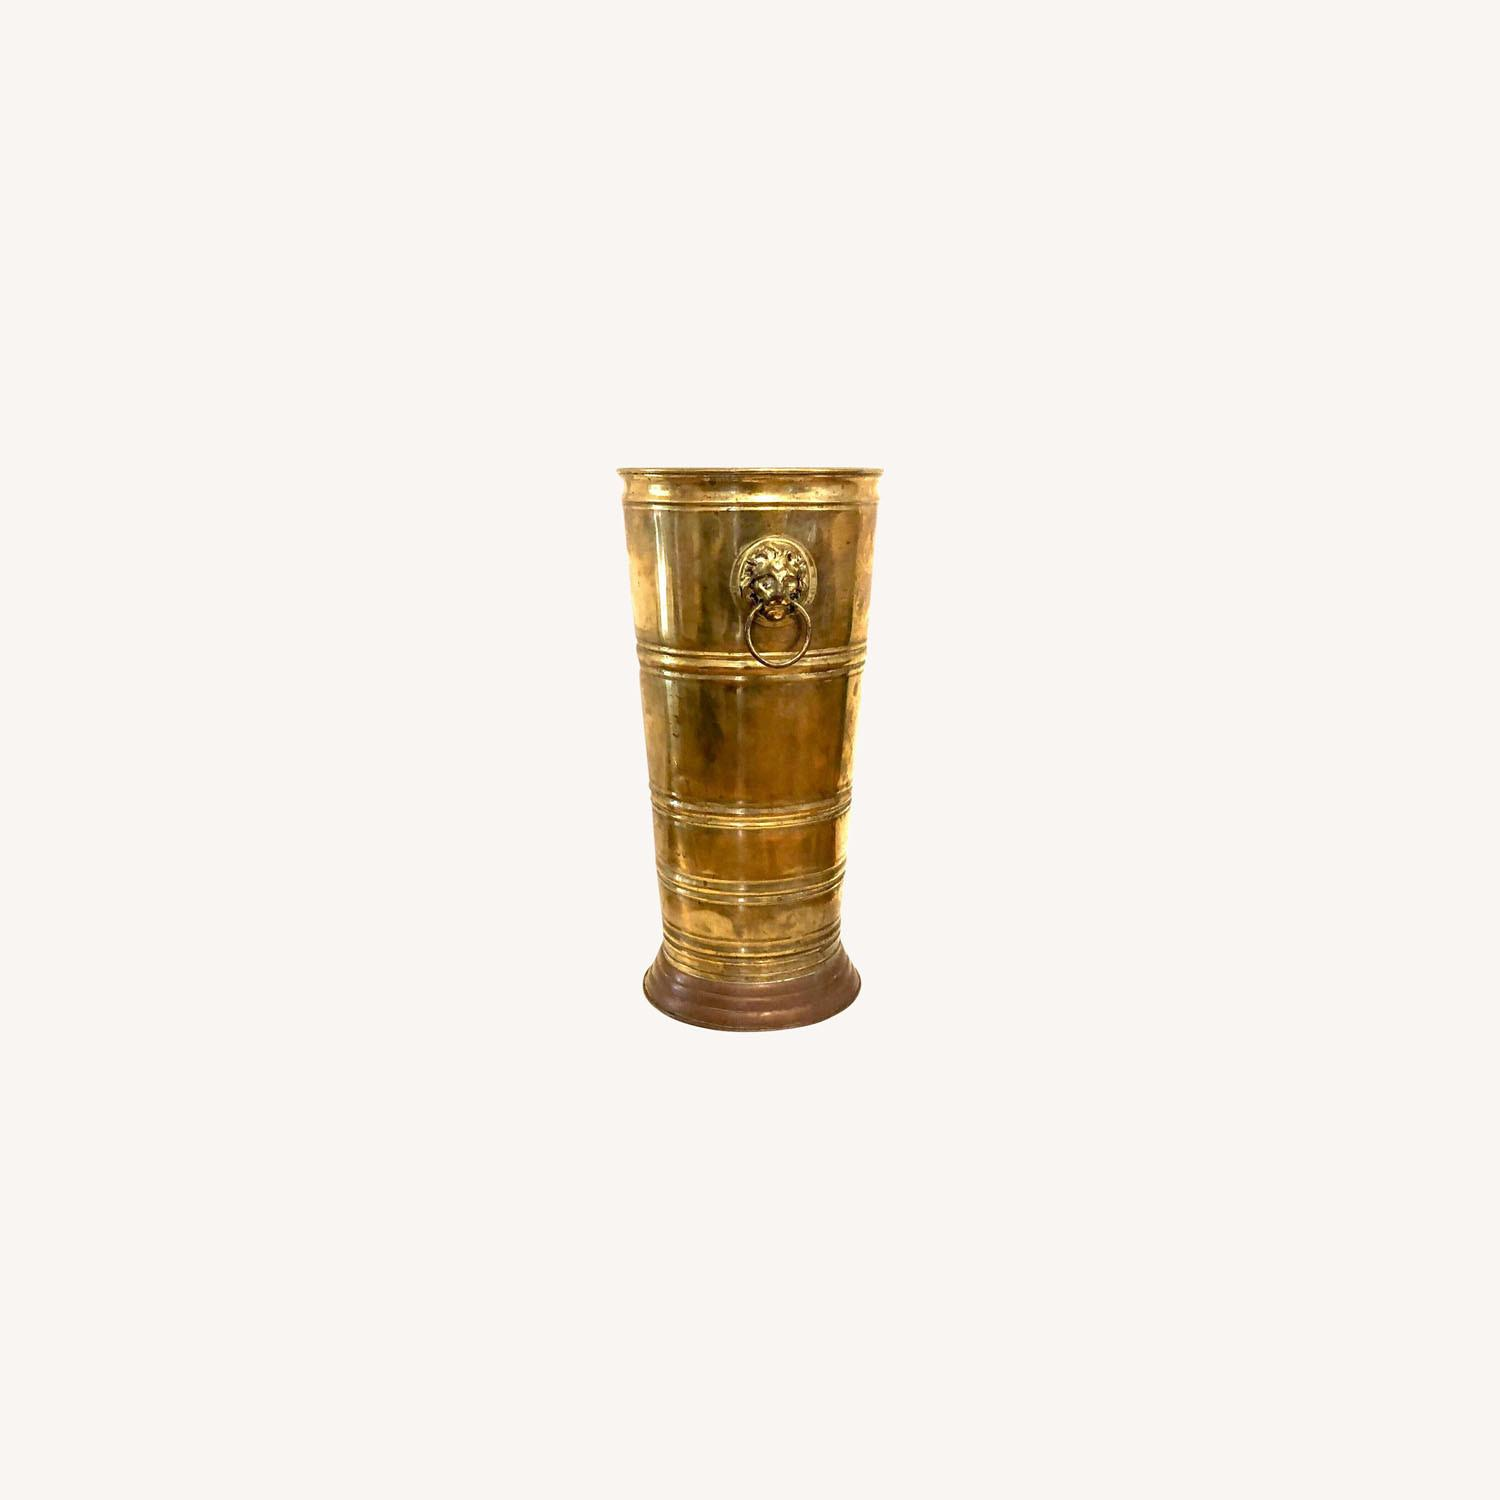 Brass Umbrella Cane Stand with Lion Heads - image-0